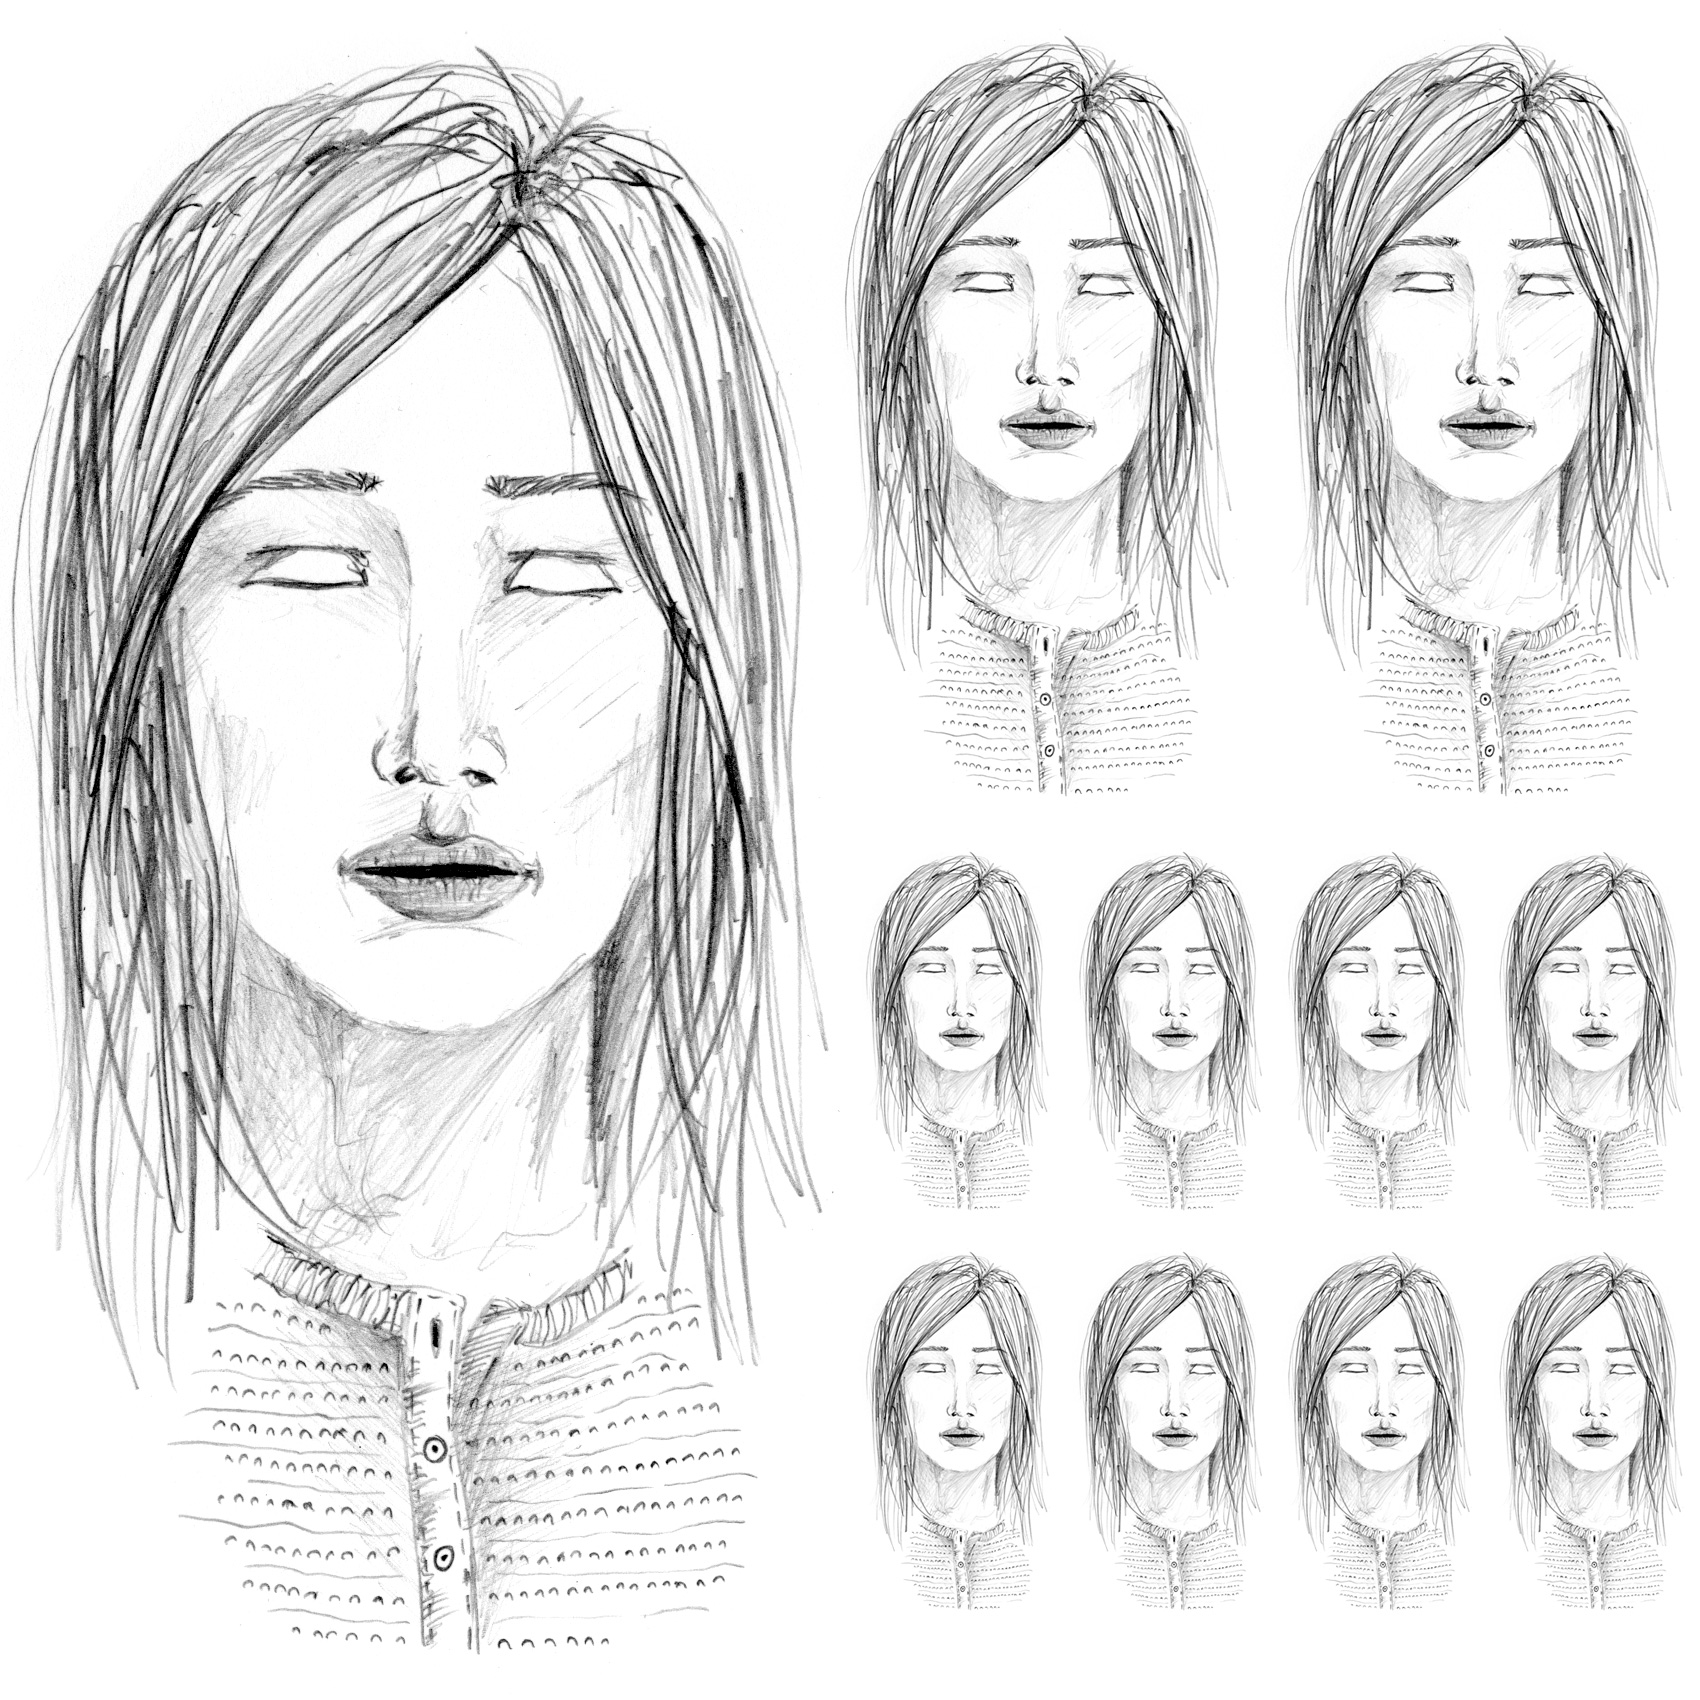 pencil sketch without eyes, in school portrait layout format